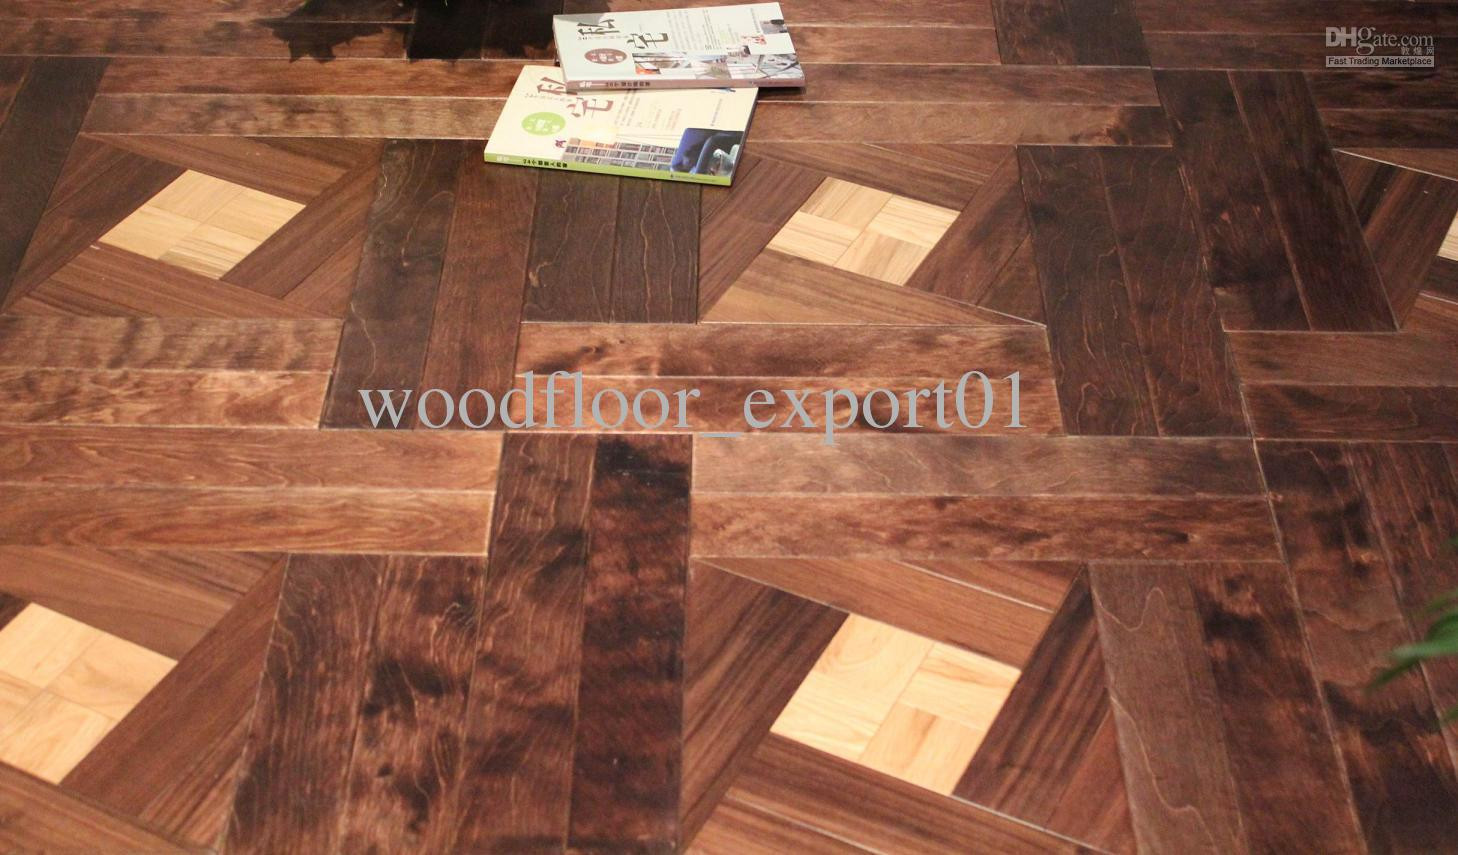 quality engineered hardwood flooring of solid wood flooring herringbone engineered wood floor ebony floor throughout wood floor made of different wood species size186019015 4mm abc real wood steadiness damp proof anti rotten and wear resistant the top veneer made